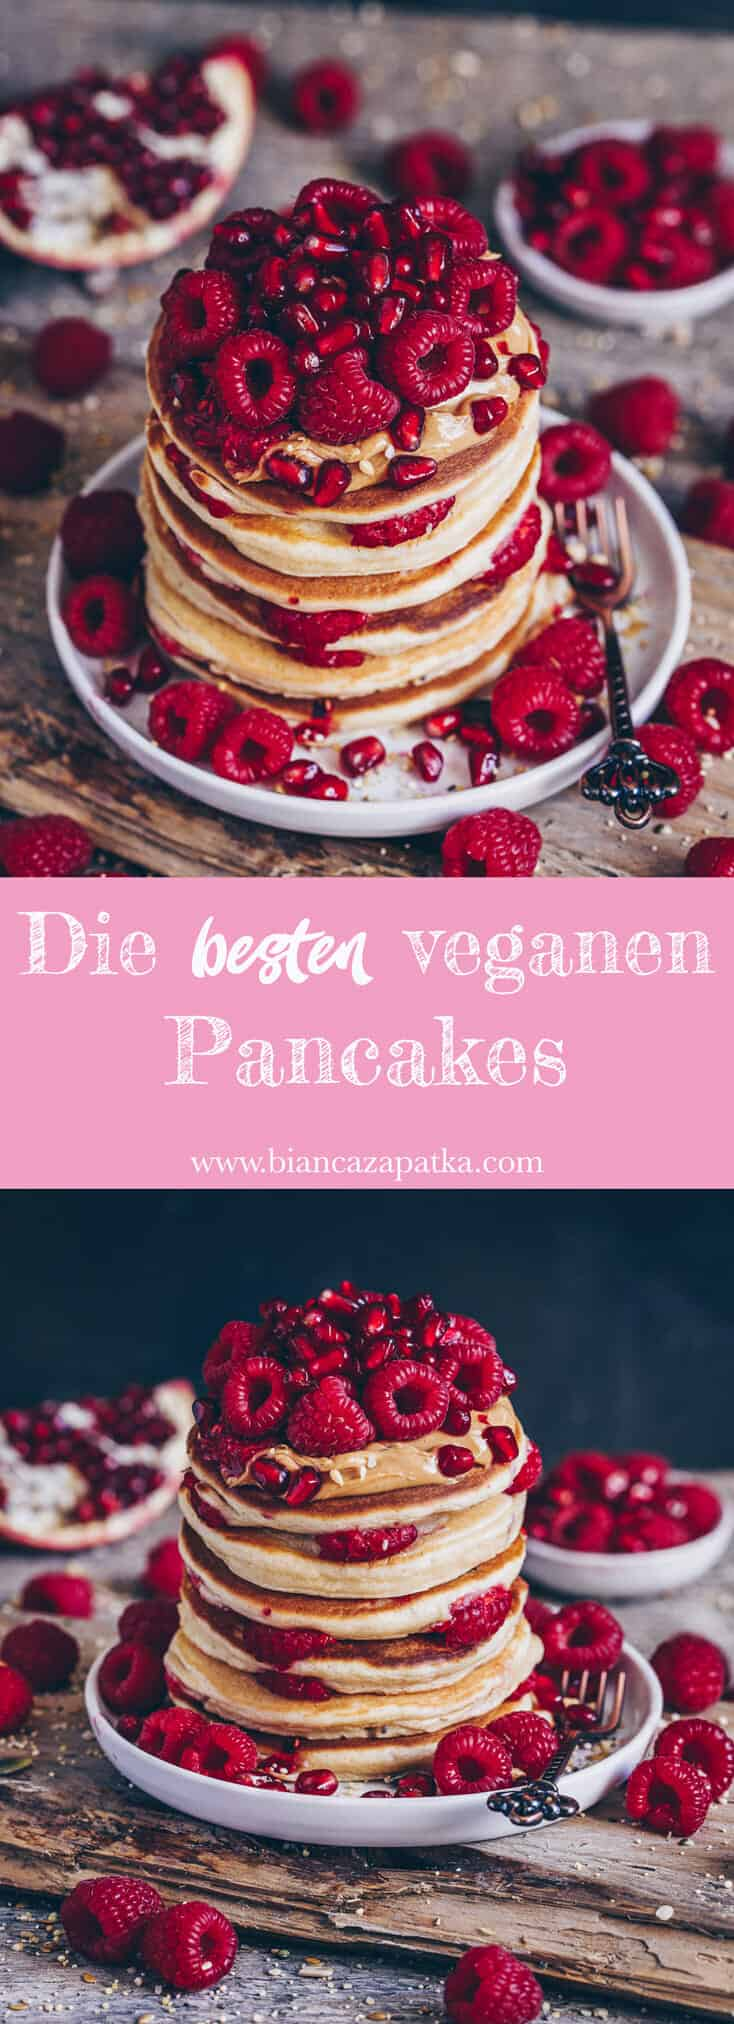 die besten veganen pancakes bianca zapatka foodblog. Black Bedroom Furniture Sets. Home Design Ideas